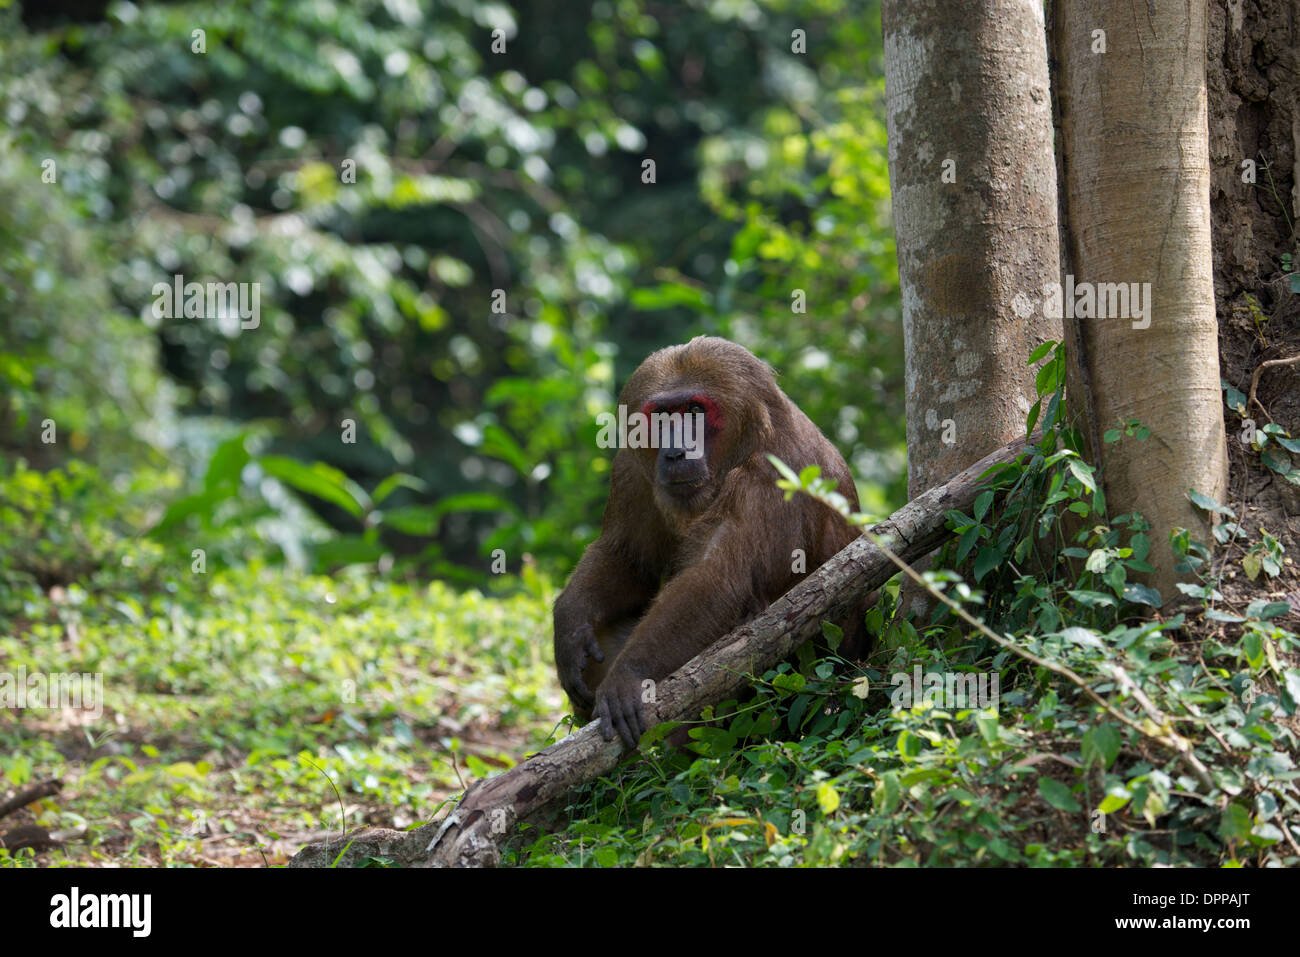 Stump-tailed macaques (Macaca arctoides) have thick, long, dark brown fur covering their bodies and short tails. - Stock Image